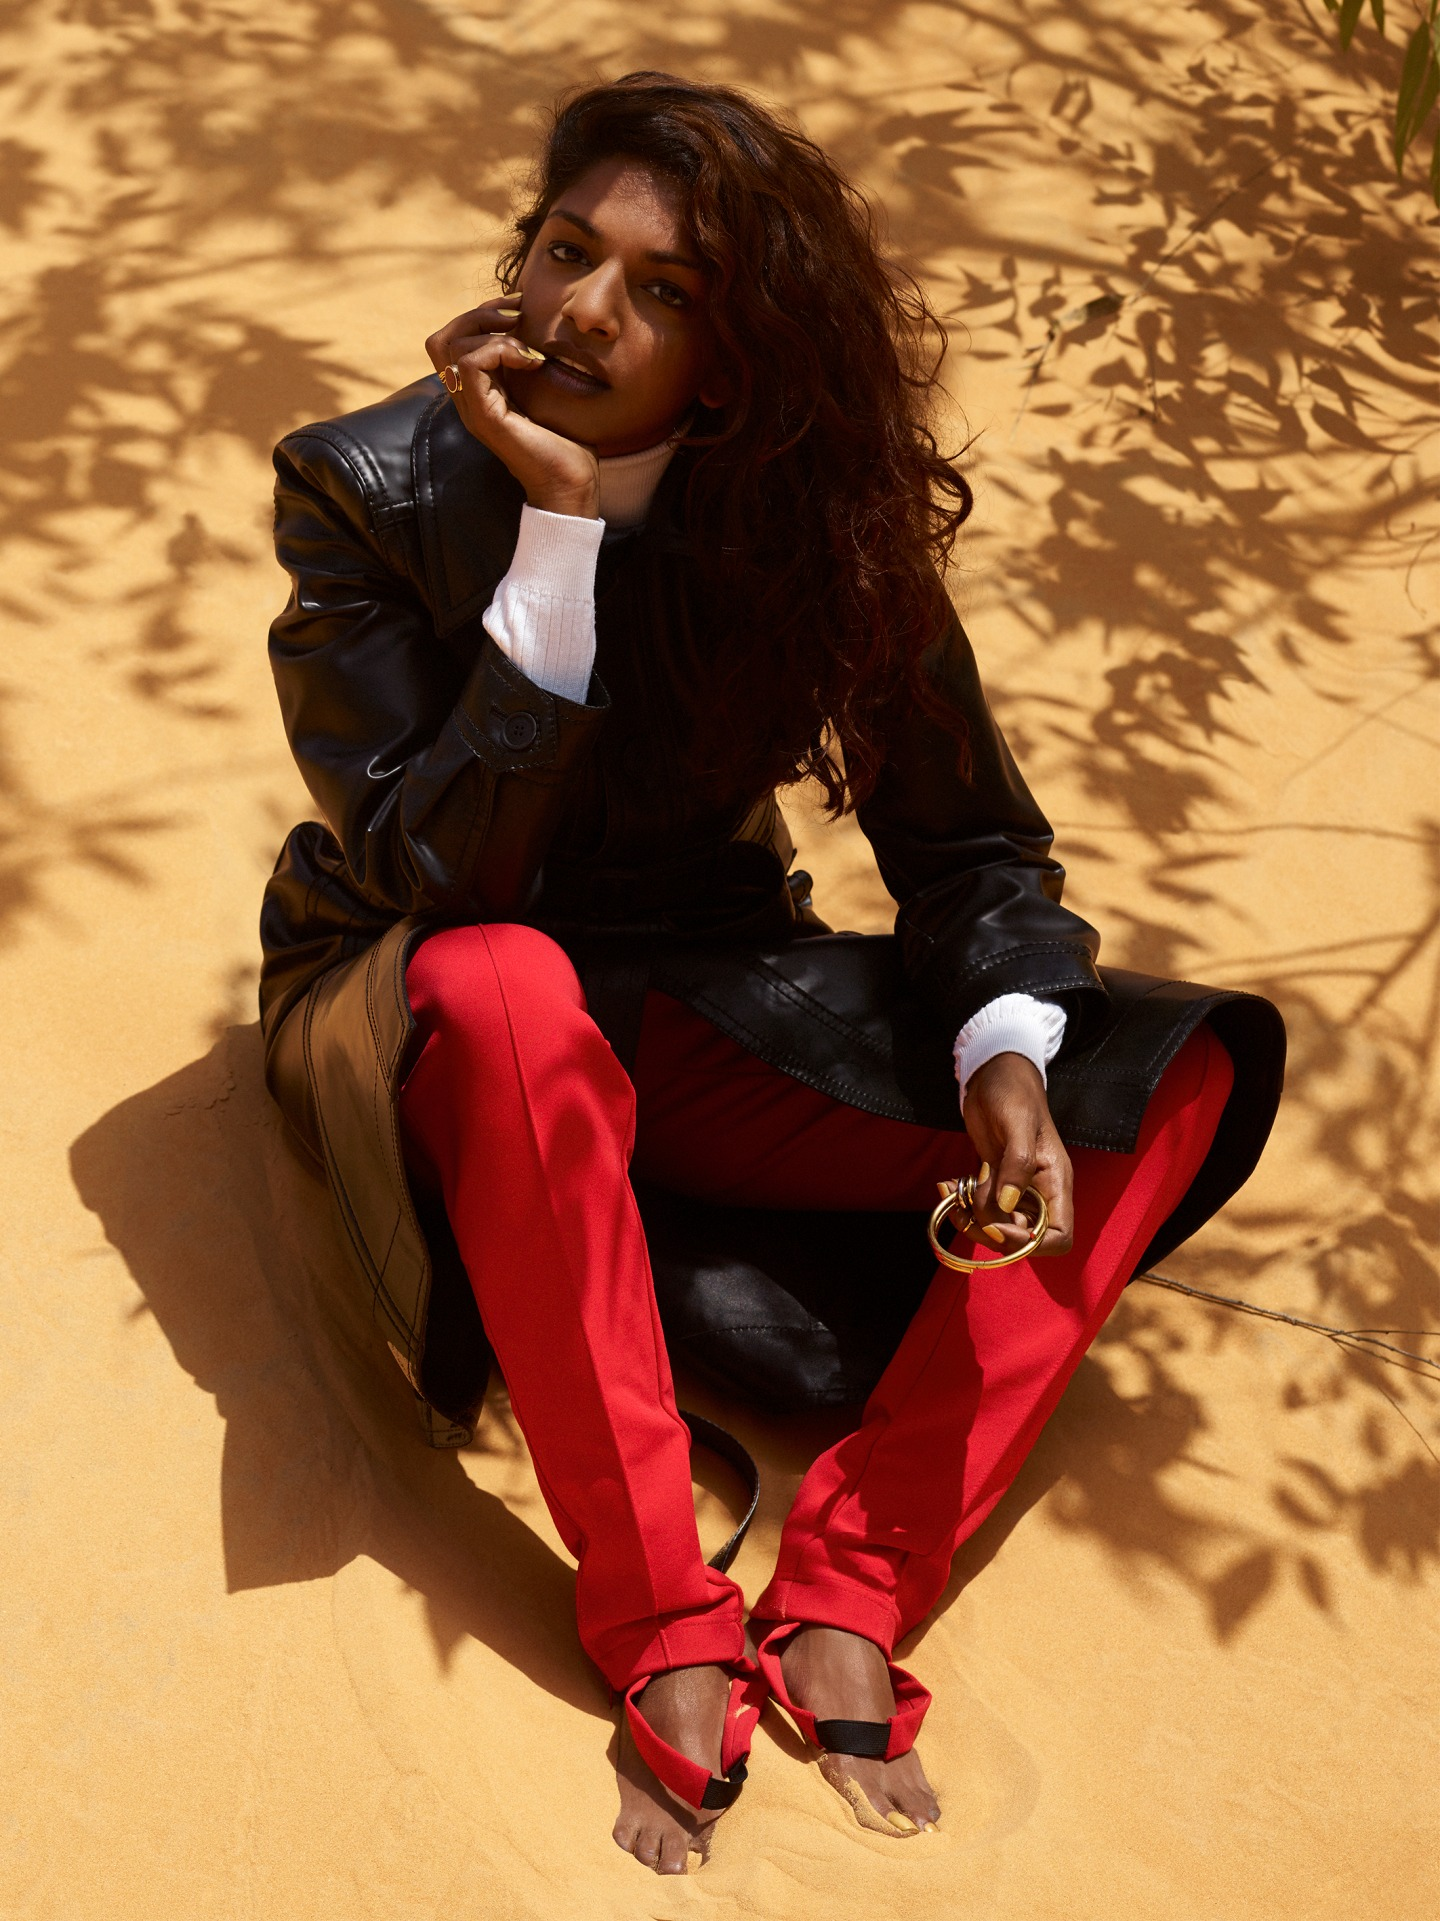 M.I.A. Says This Is Her Last Album Ever. But It Seems Like She Still Has A Lot To Say.